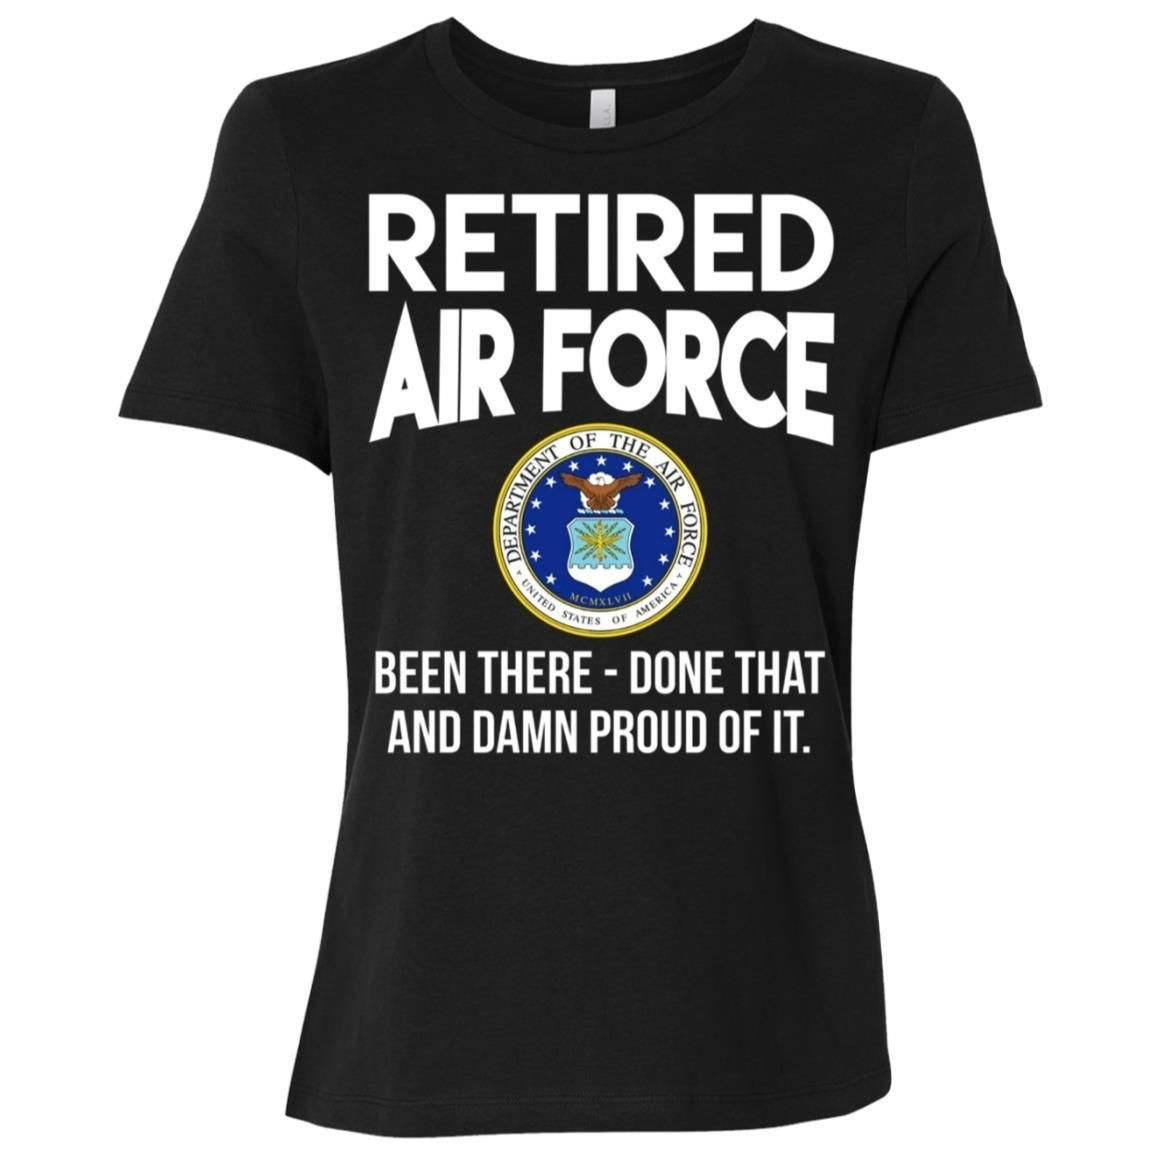 Air Force Retired - Army Retired Women Short Sleeve T